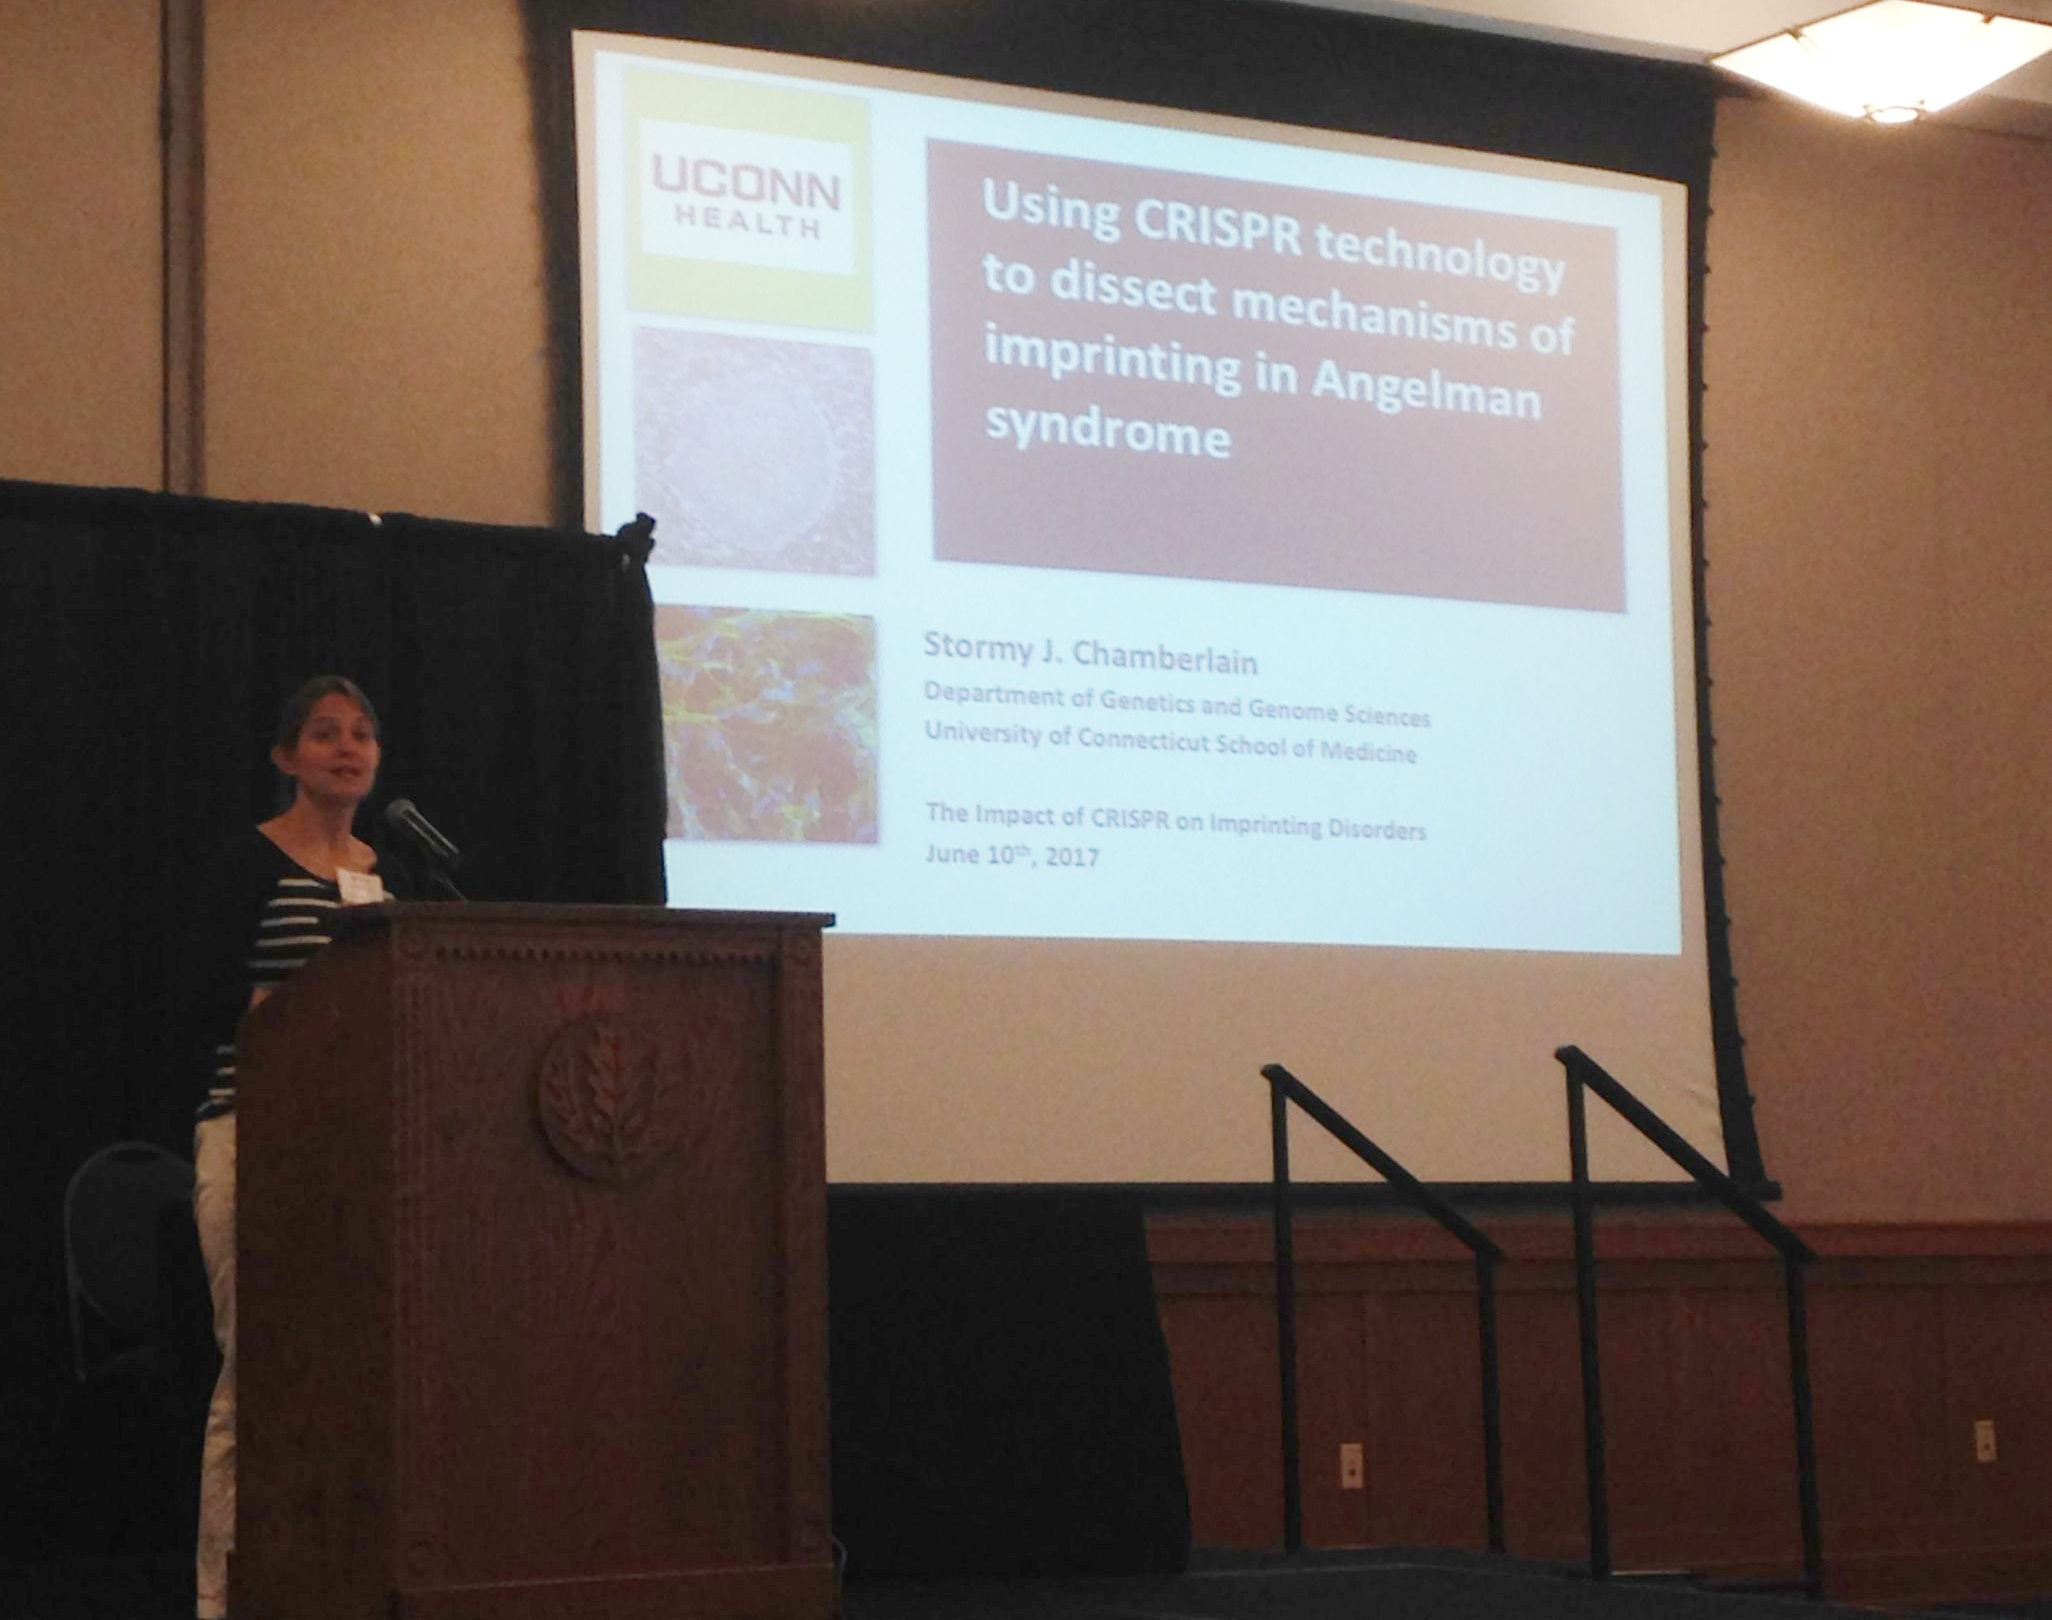 Dr. Stormy Chamberlain presents on the imprinting disorder,Angelman Syndrome.